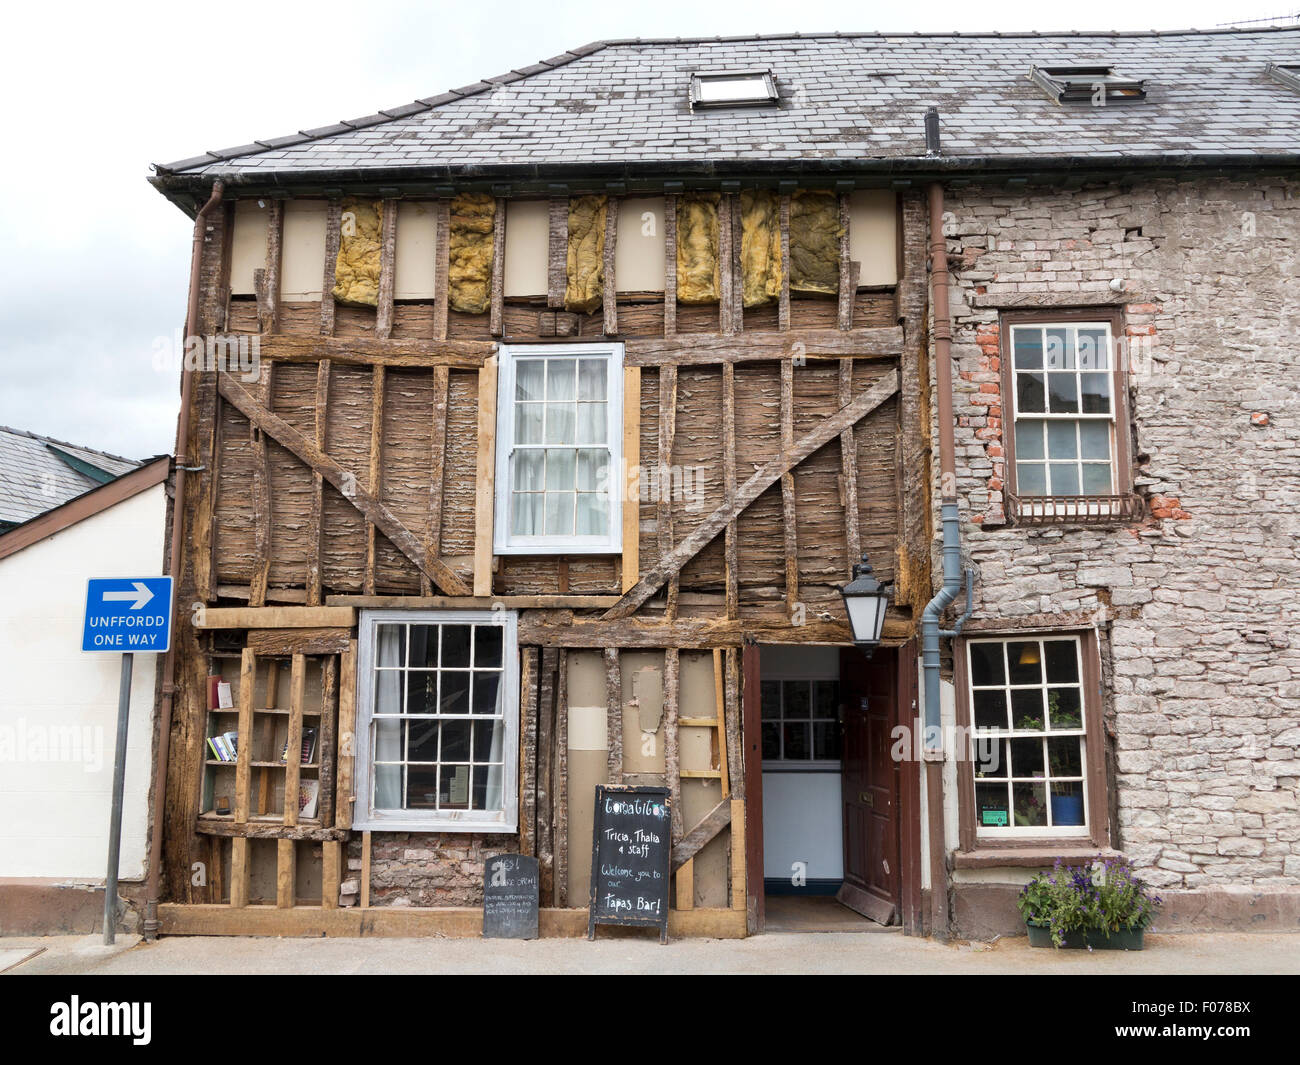 Cafe building in Hay-on-Wye Powys Wales with front facade exposed showing timber frame structure, wattle and daub - Stock Image